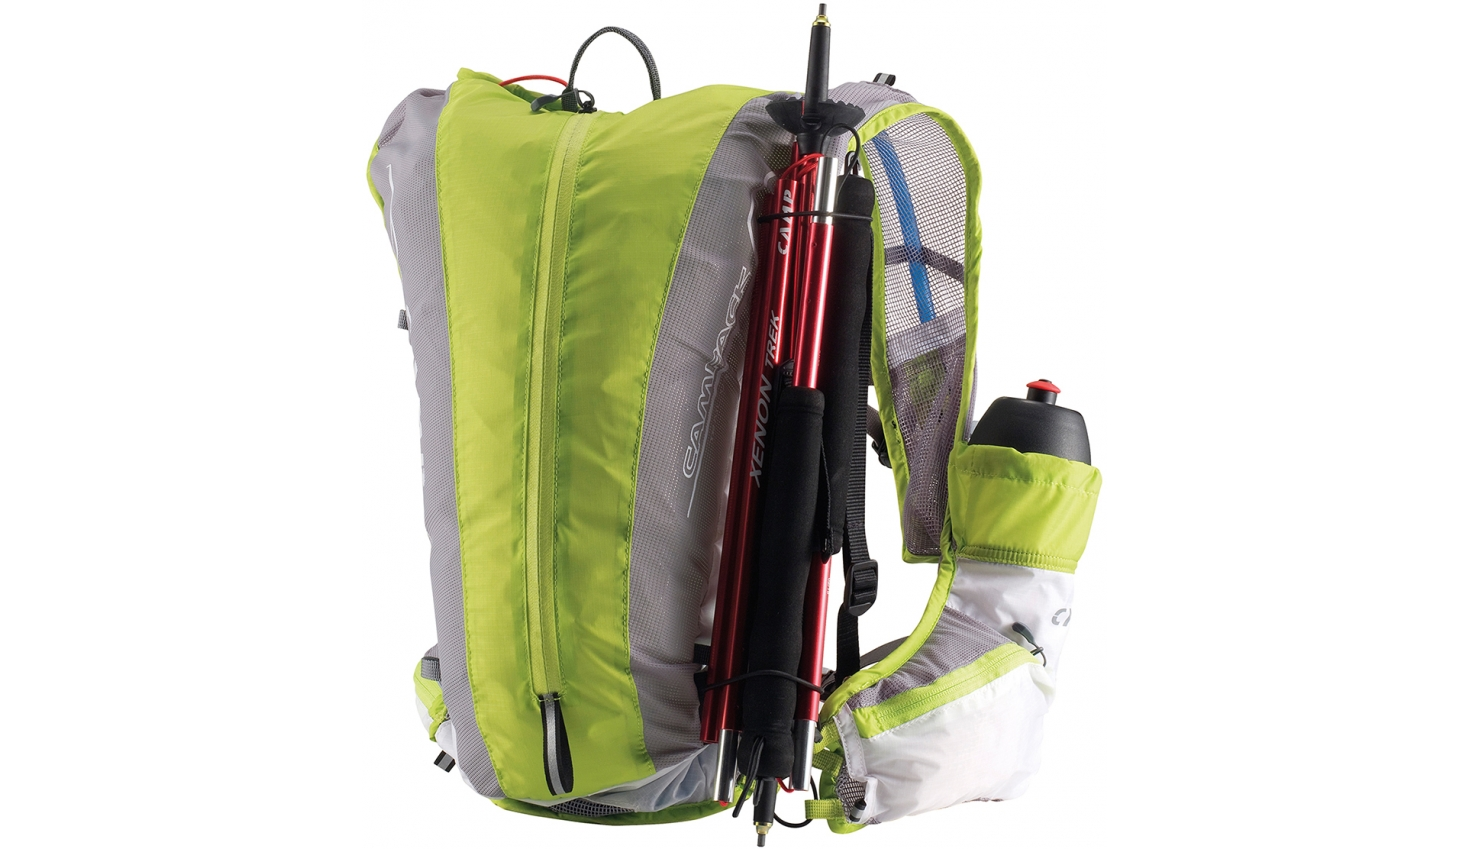 Camp_Trail_Vest_Light_Backpack_10_L_Green_White[1470x0849]